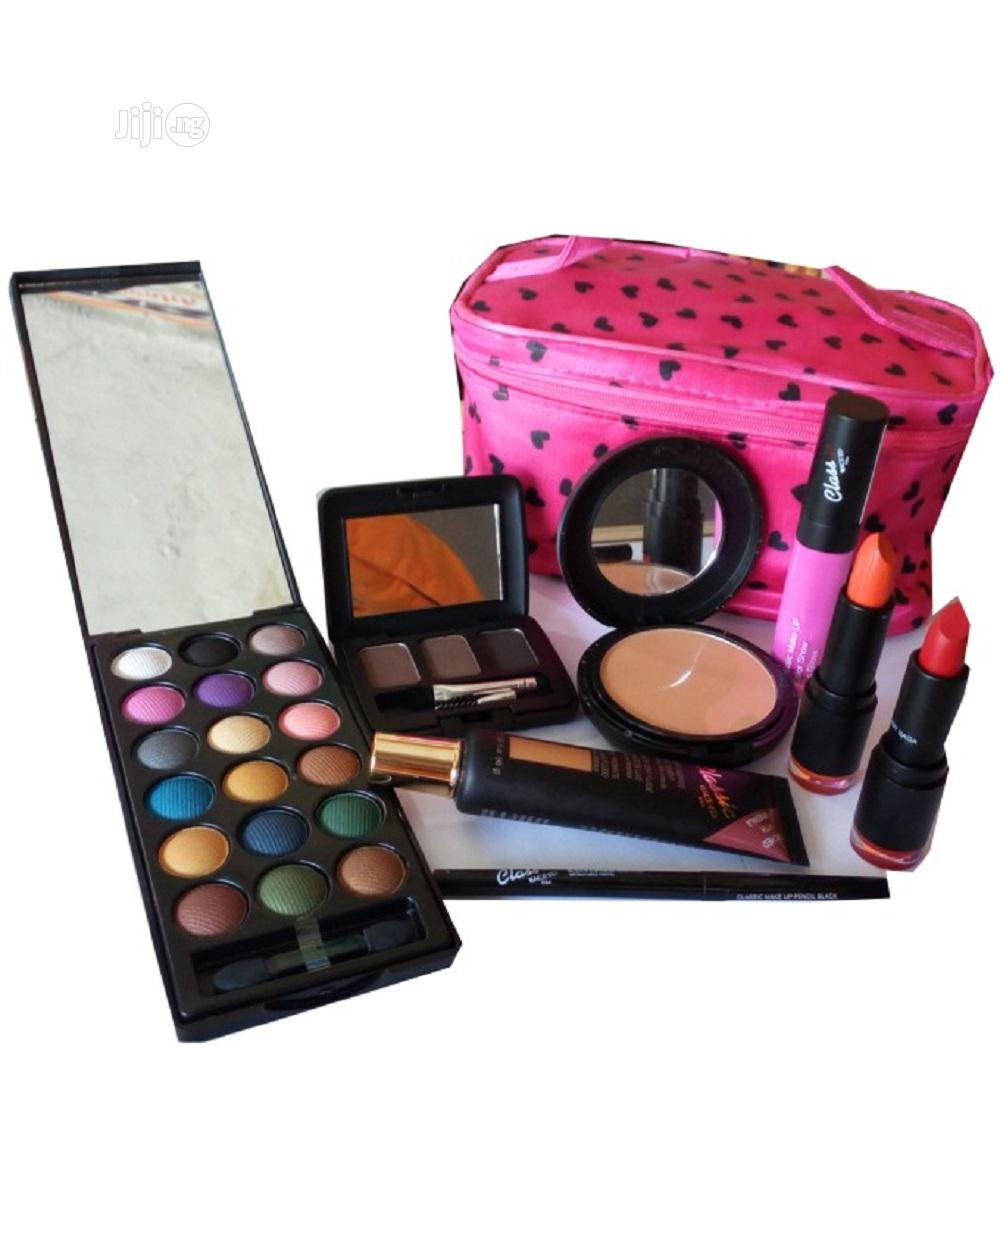 Archive: Makeup Complete Kit With Free Makeup Bag